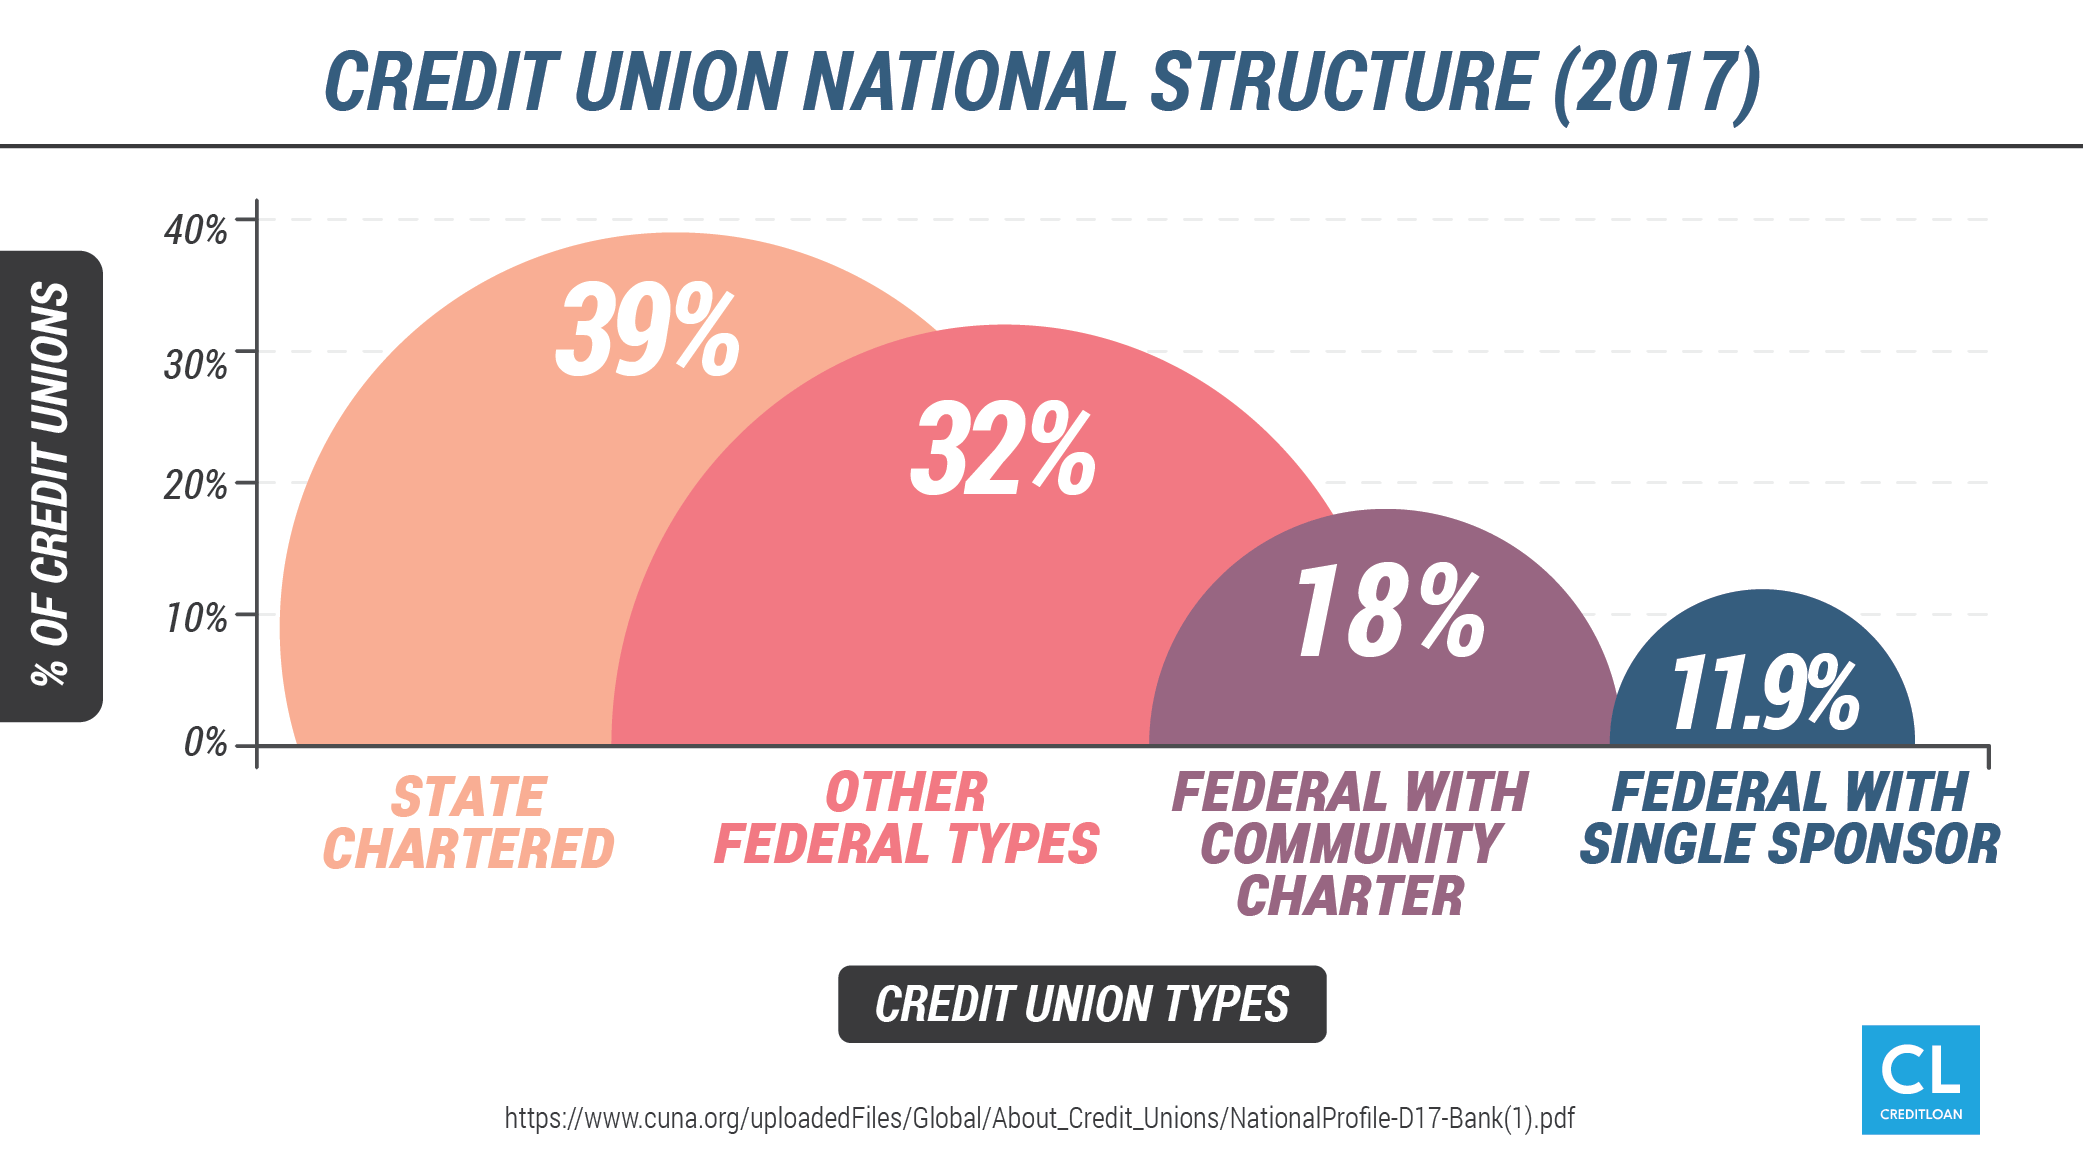 Graphic of how credit unions are structured